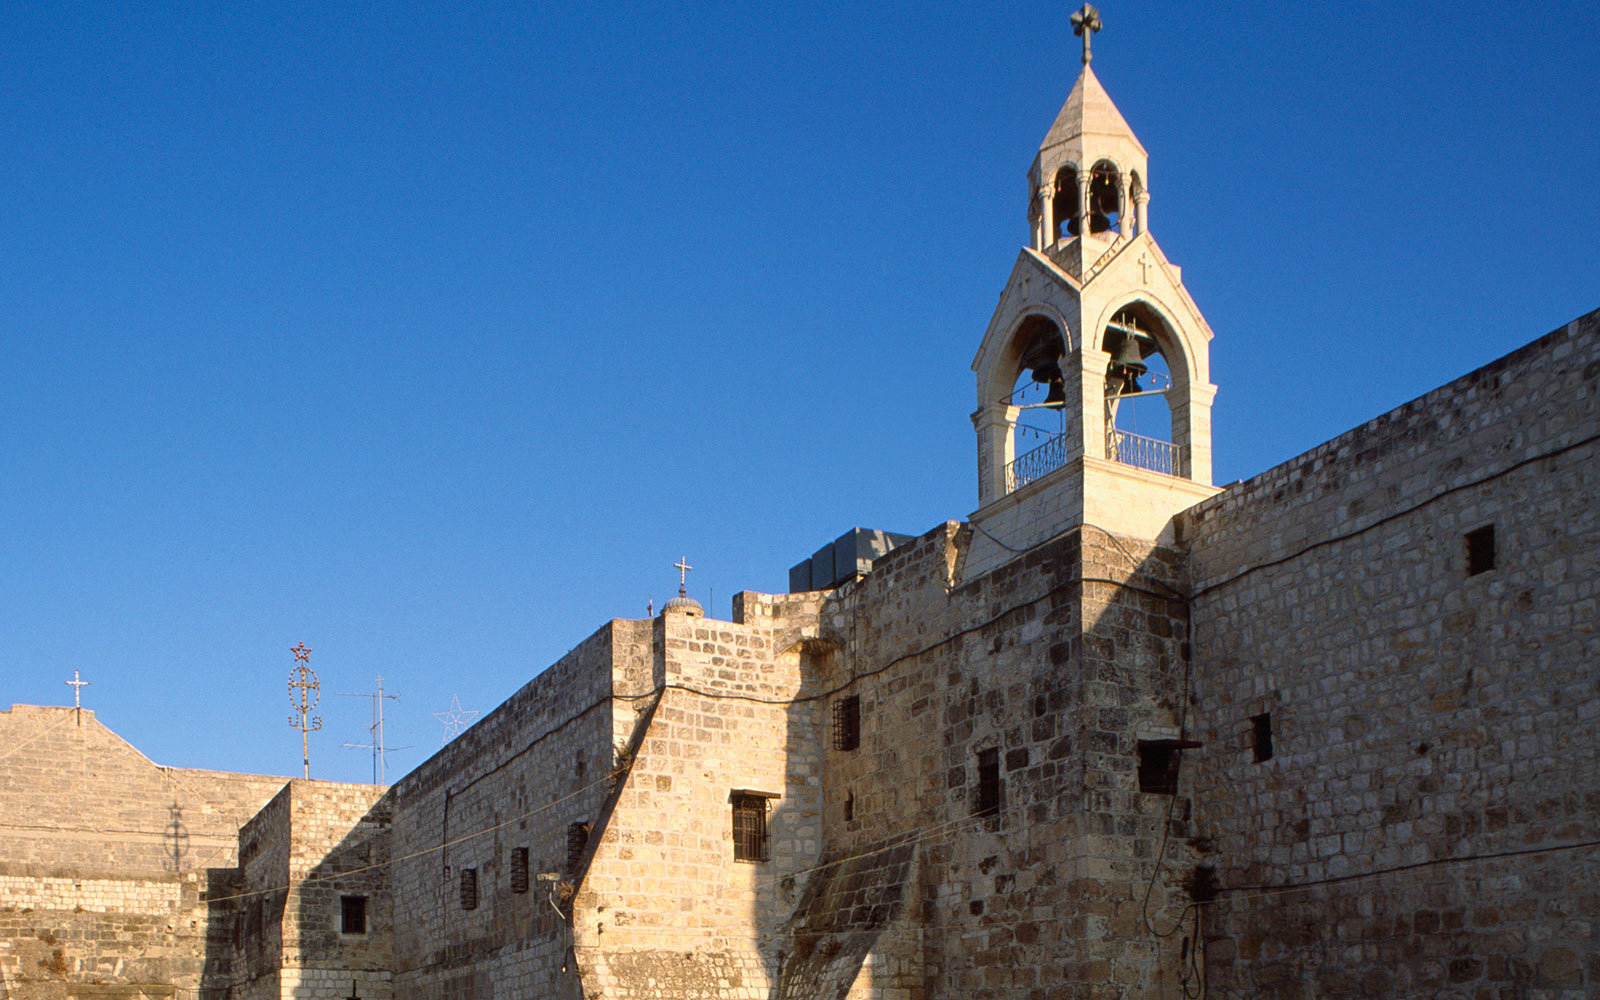 Church of the Nativity, Bethlehem, Palestine